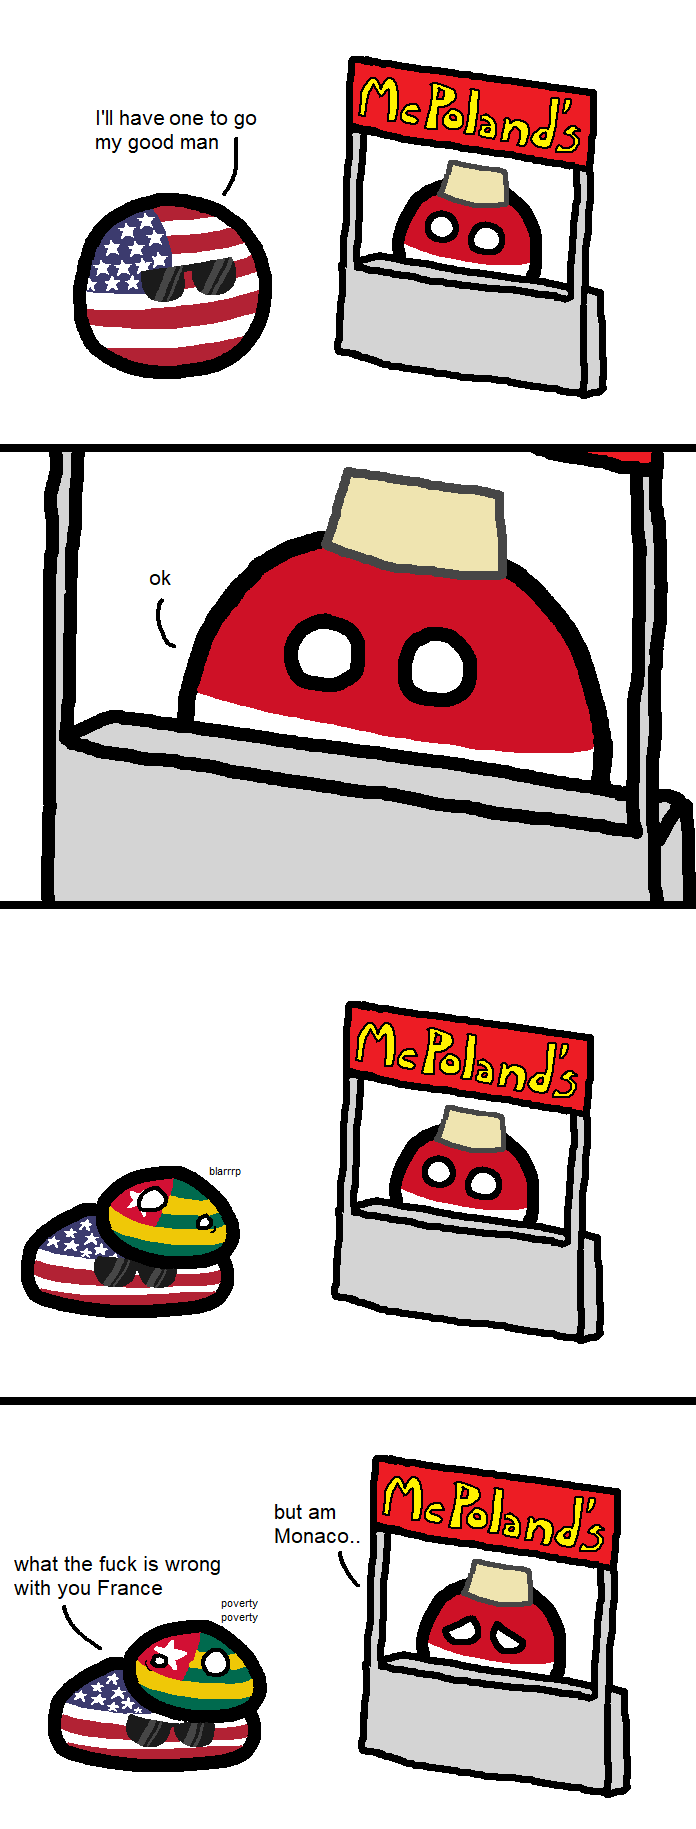 Countryballs Animated Polandball Or Indonesiaball Or Monacoball